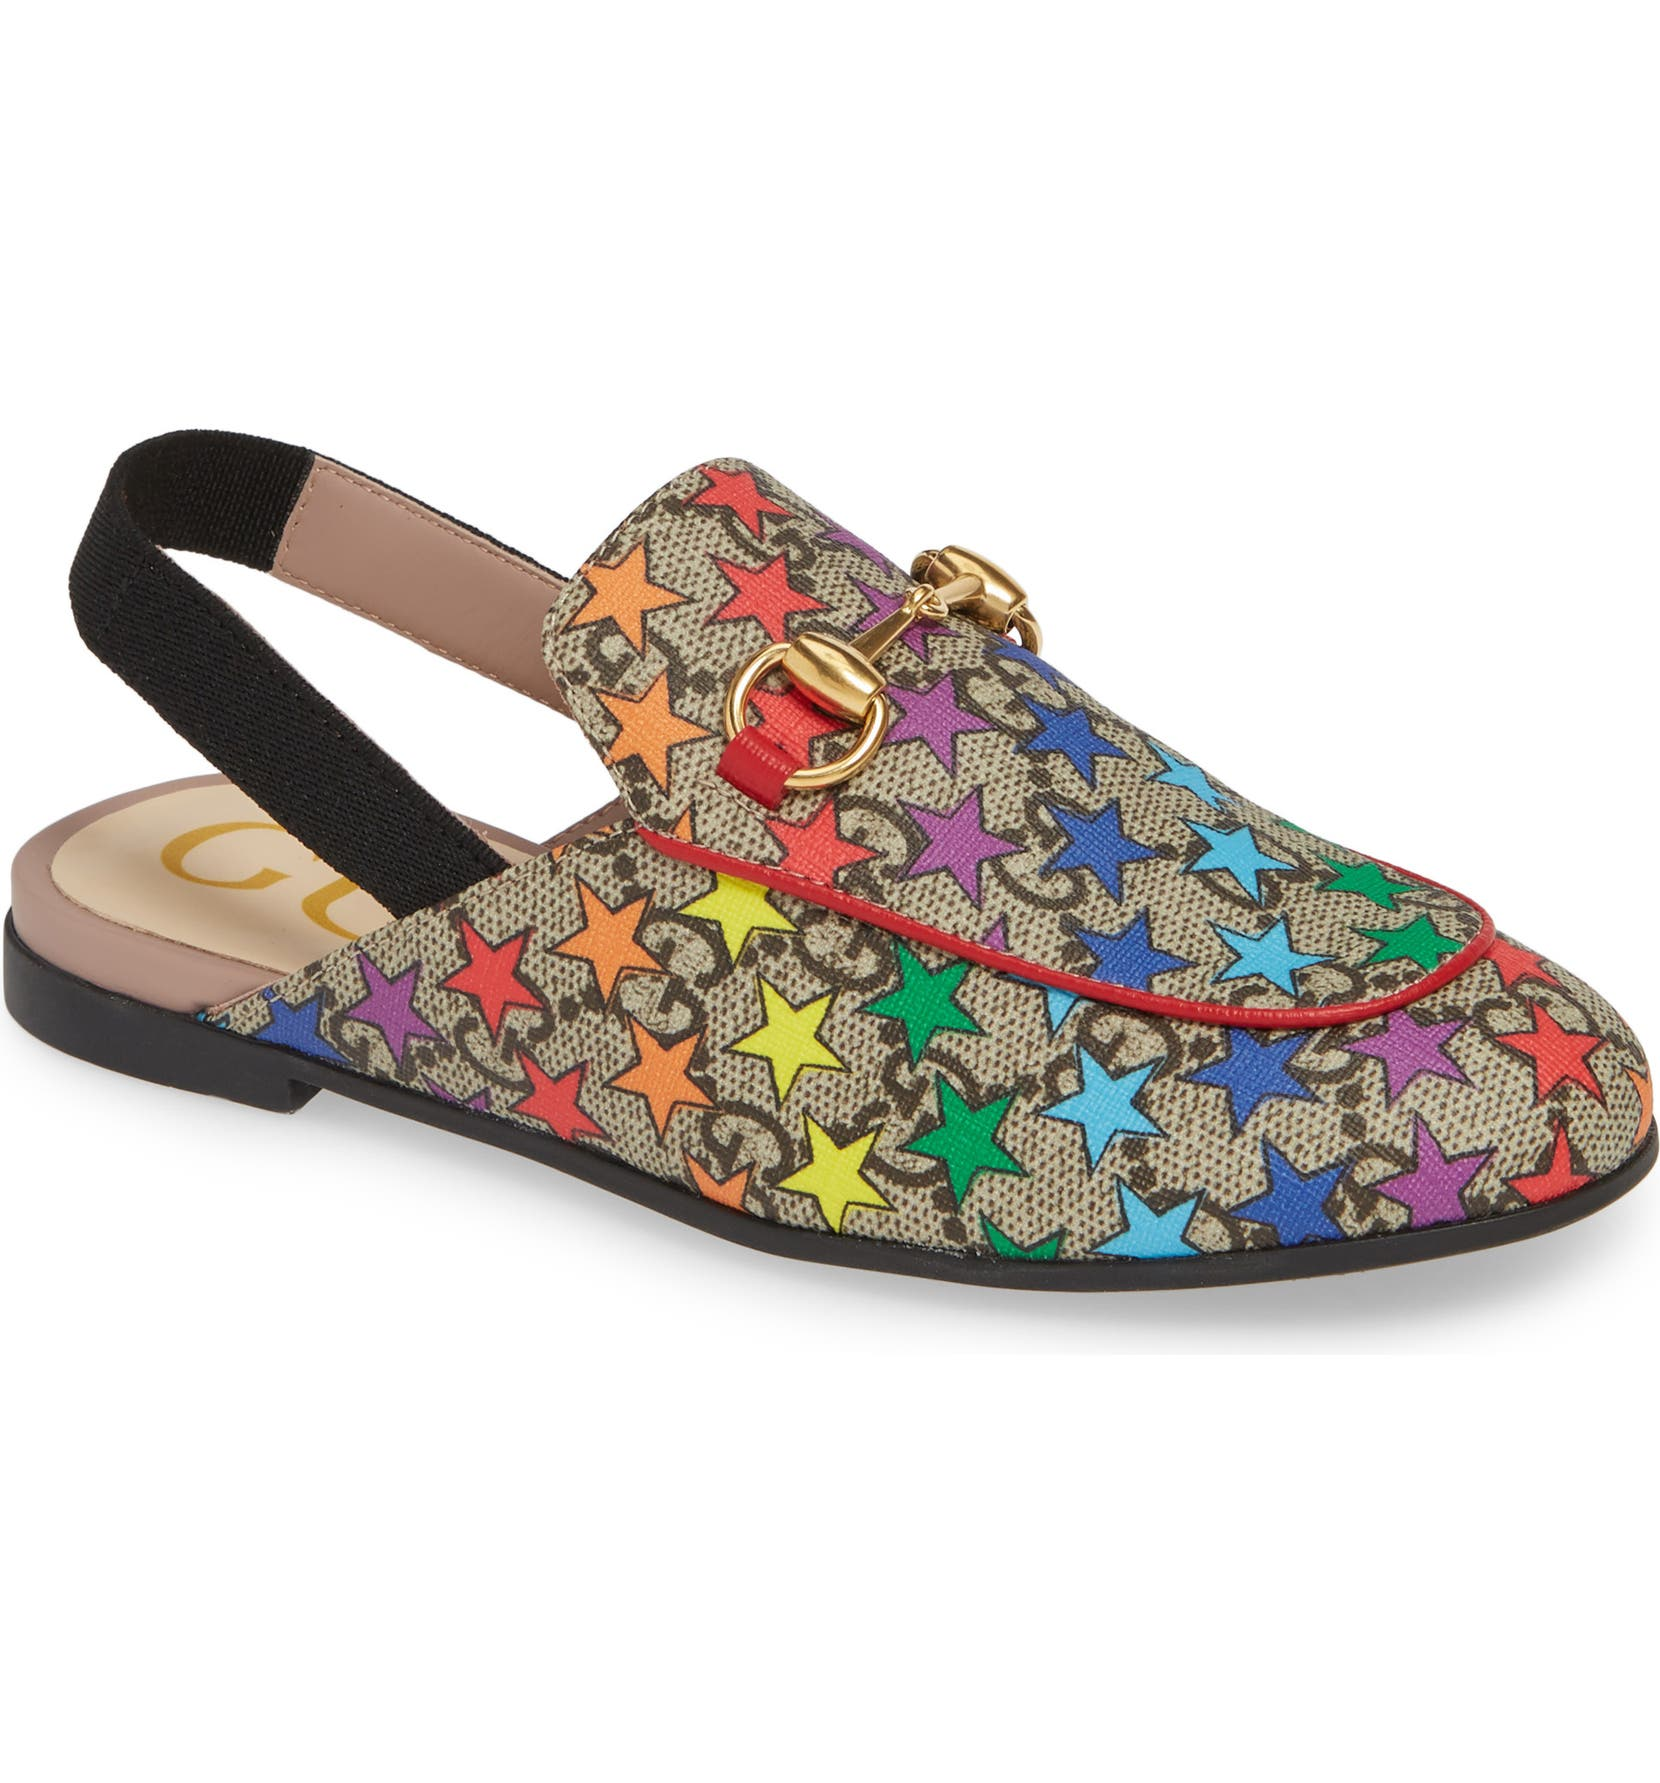 97b4094d329 Gucci Princetown GG Rainbow Star Loafer Mule (Toddler   Little Kid ...